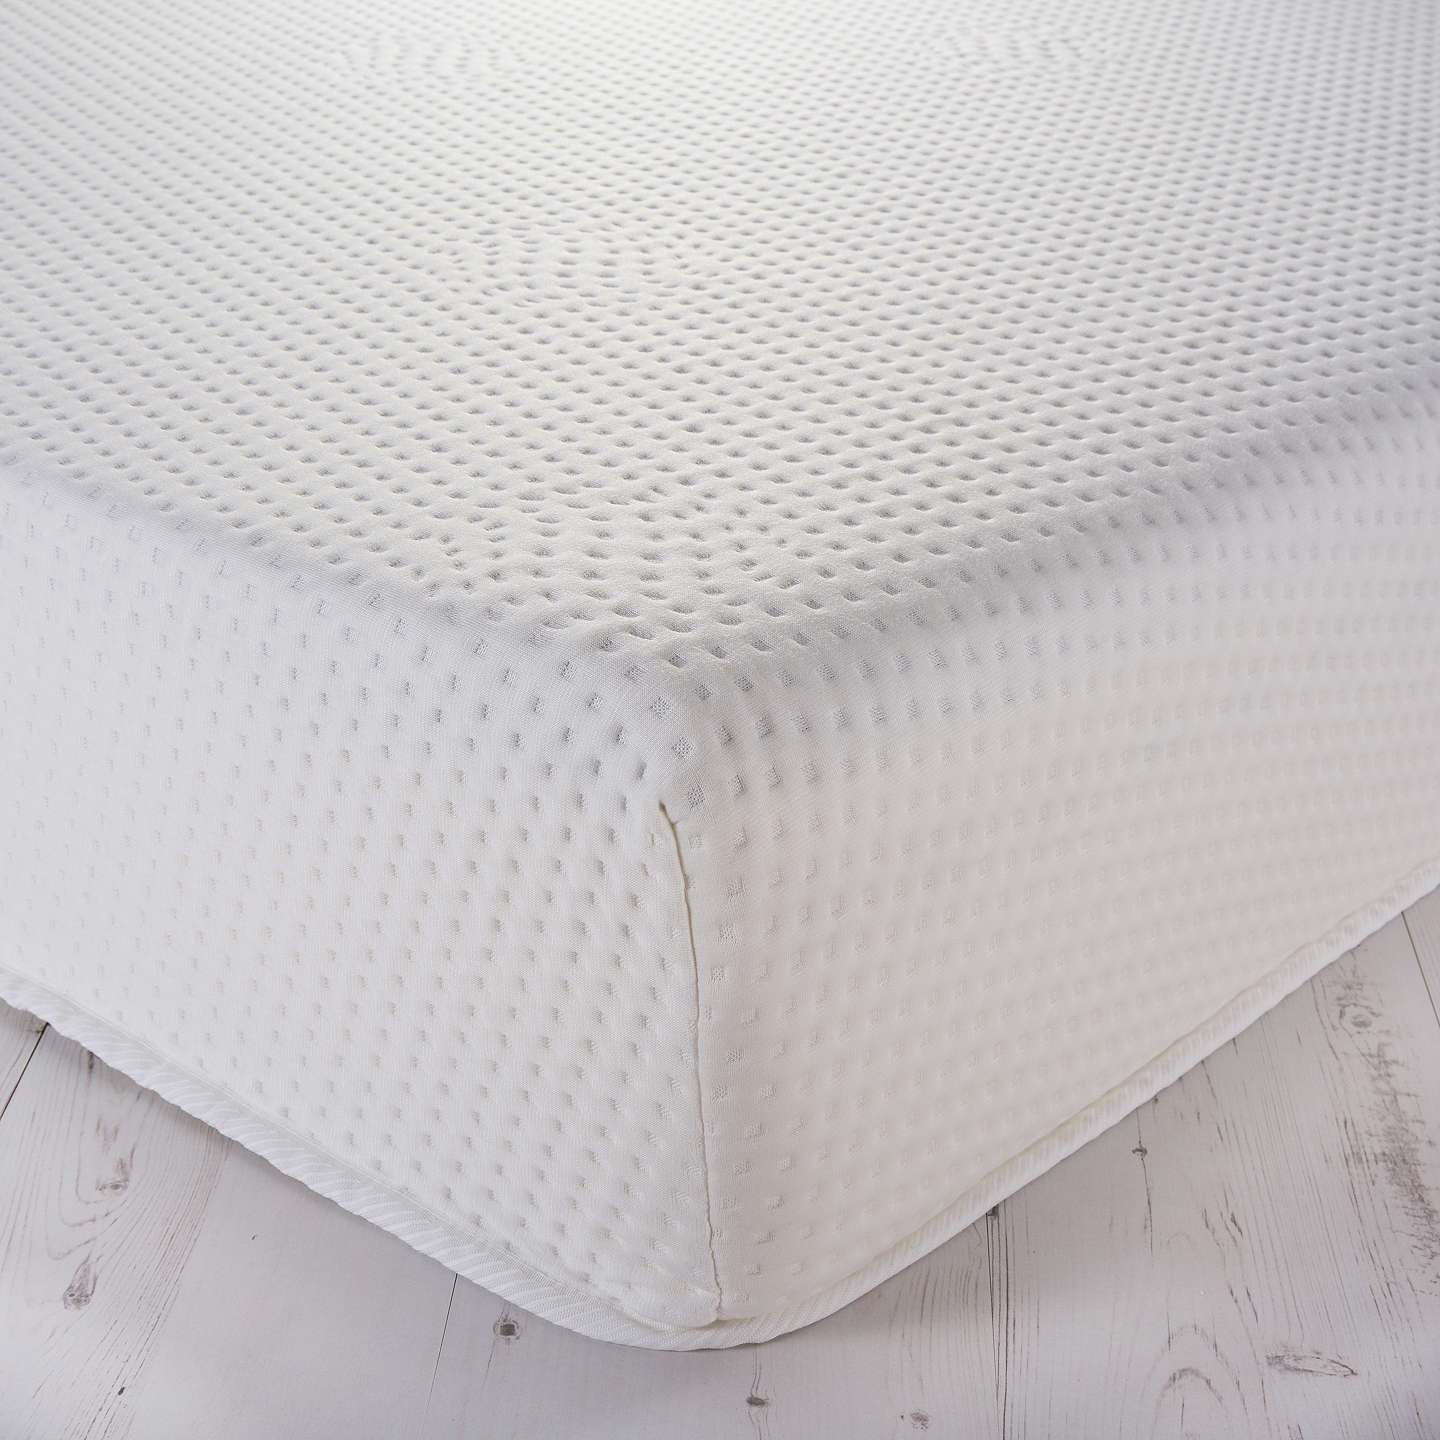 mattresses the mattress product pad memory foam arrival store